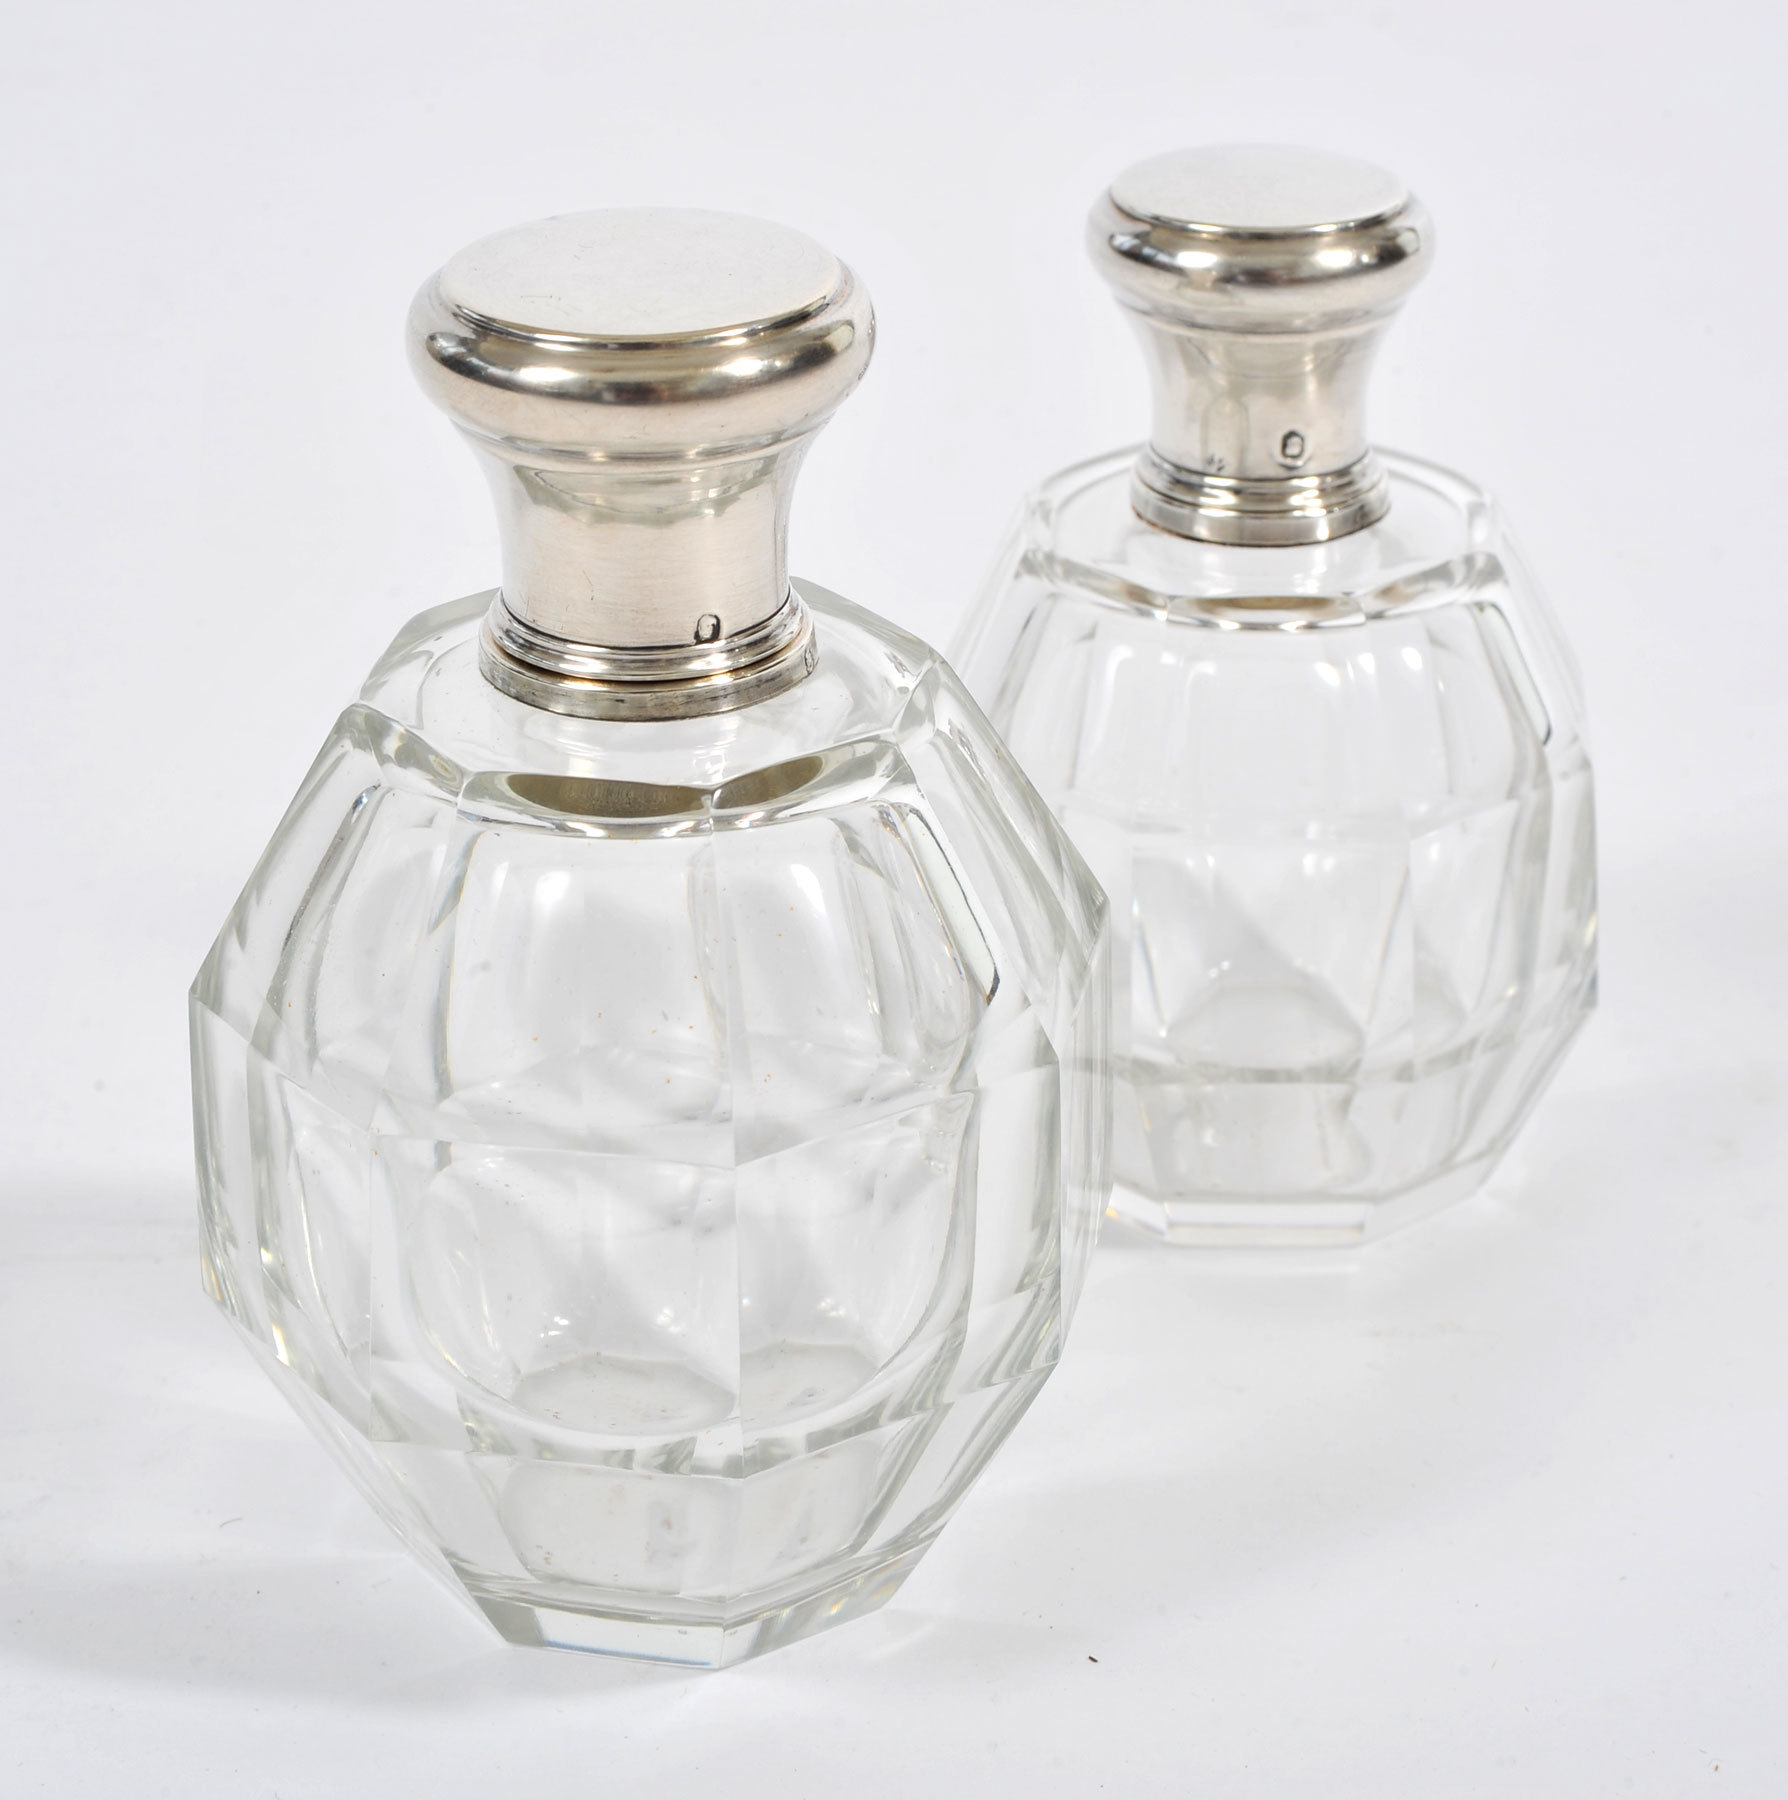 Two Scent Bottles 02 Vw